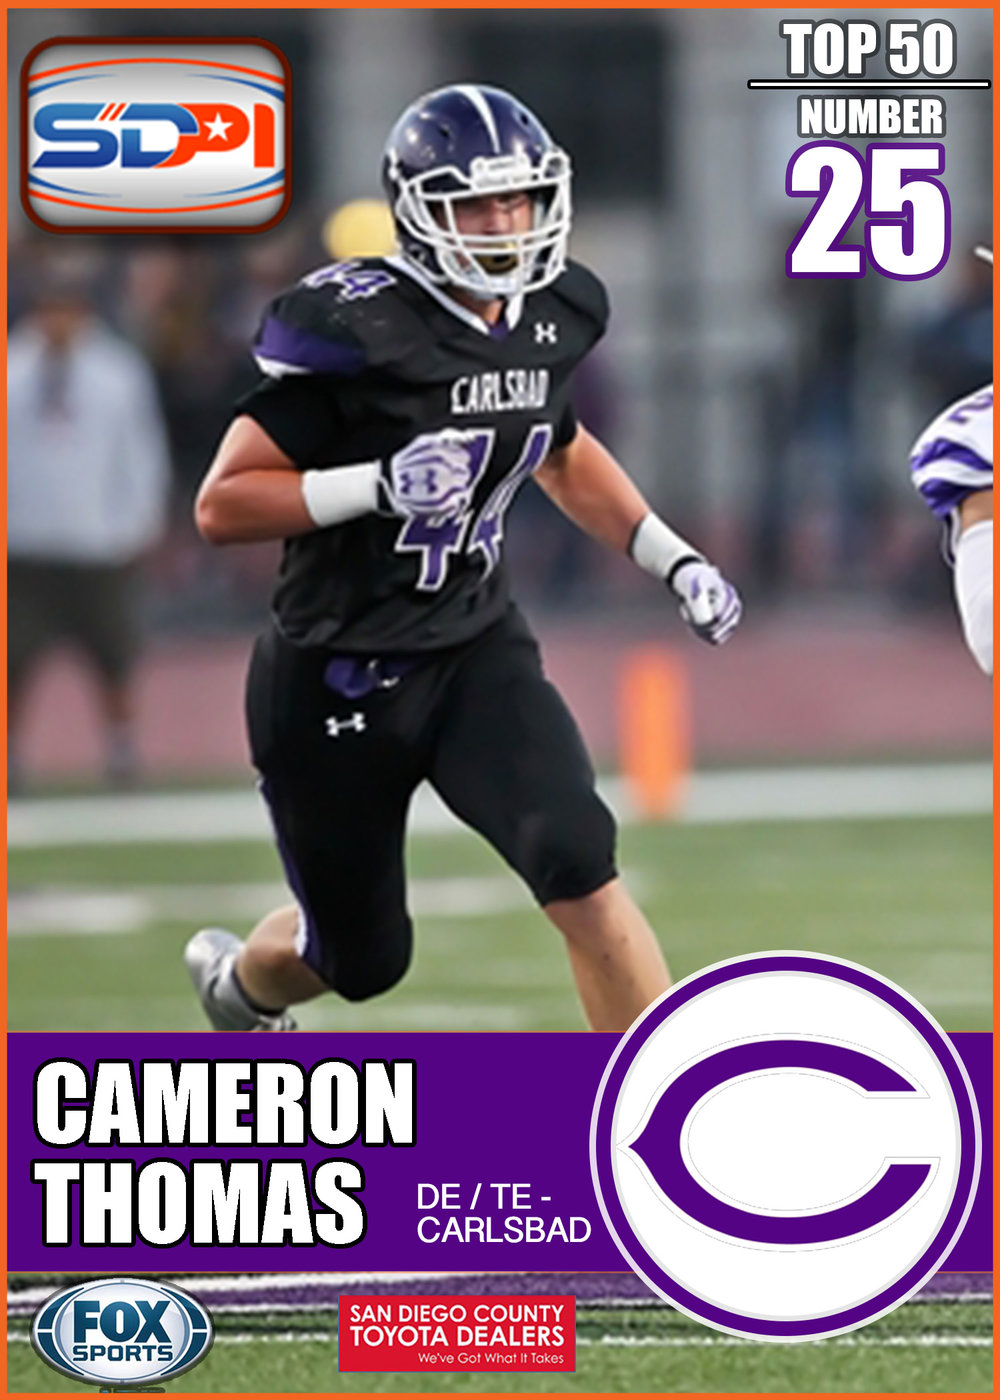 - Size and versatility. Thomas is one of San Diego's must under the radar talents. It's a new generation at Carlsbad and Thomas will be a backbone of the Lancer's production on both sides of the ball.